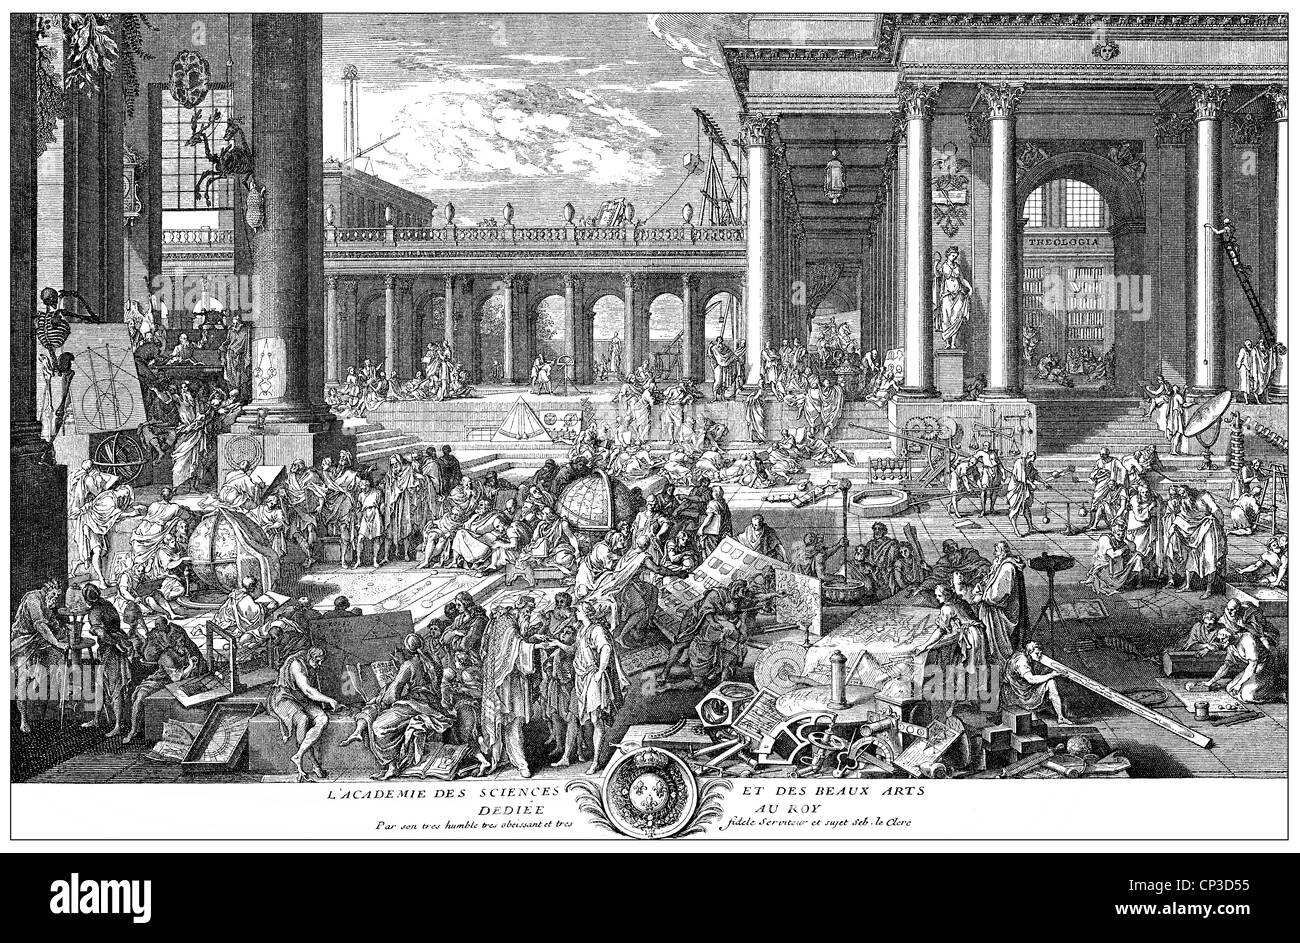 allegory of the French academic society Académie française also known as French Academy - Stock Image